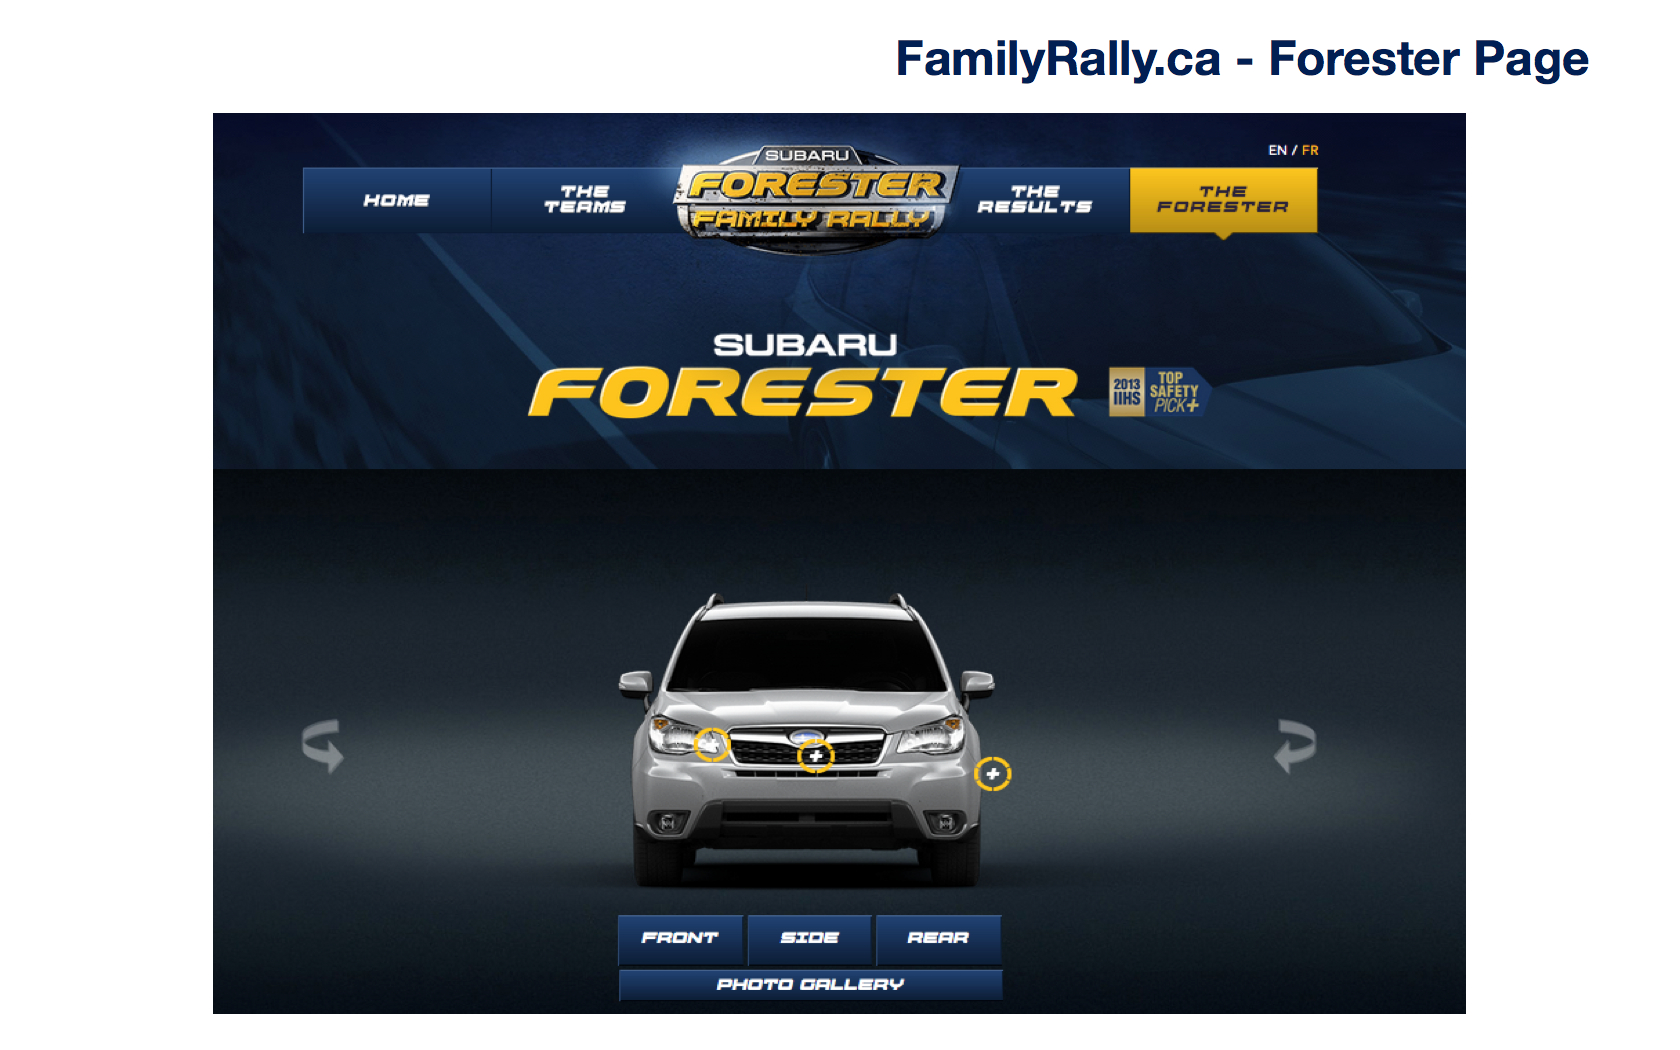 12325_Cassies_-_Subaru_Forester_Family_Rally_Creative_Elements.009